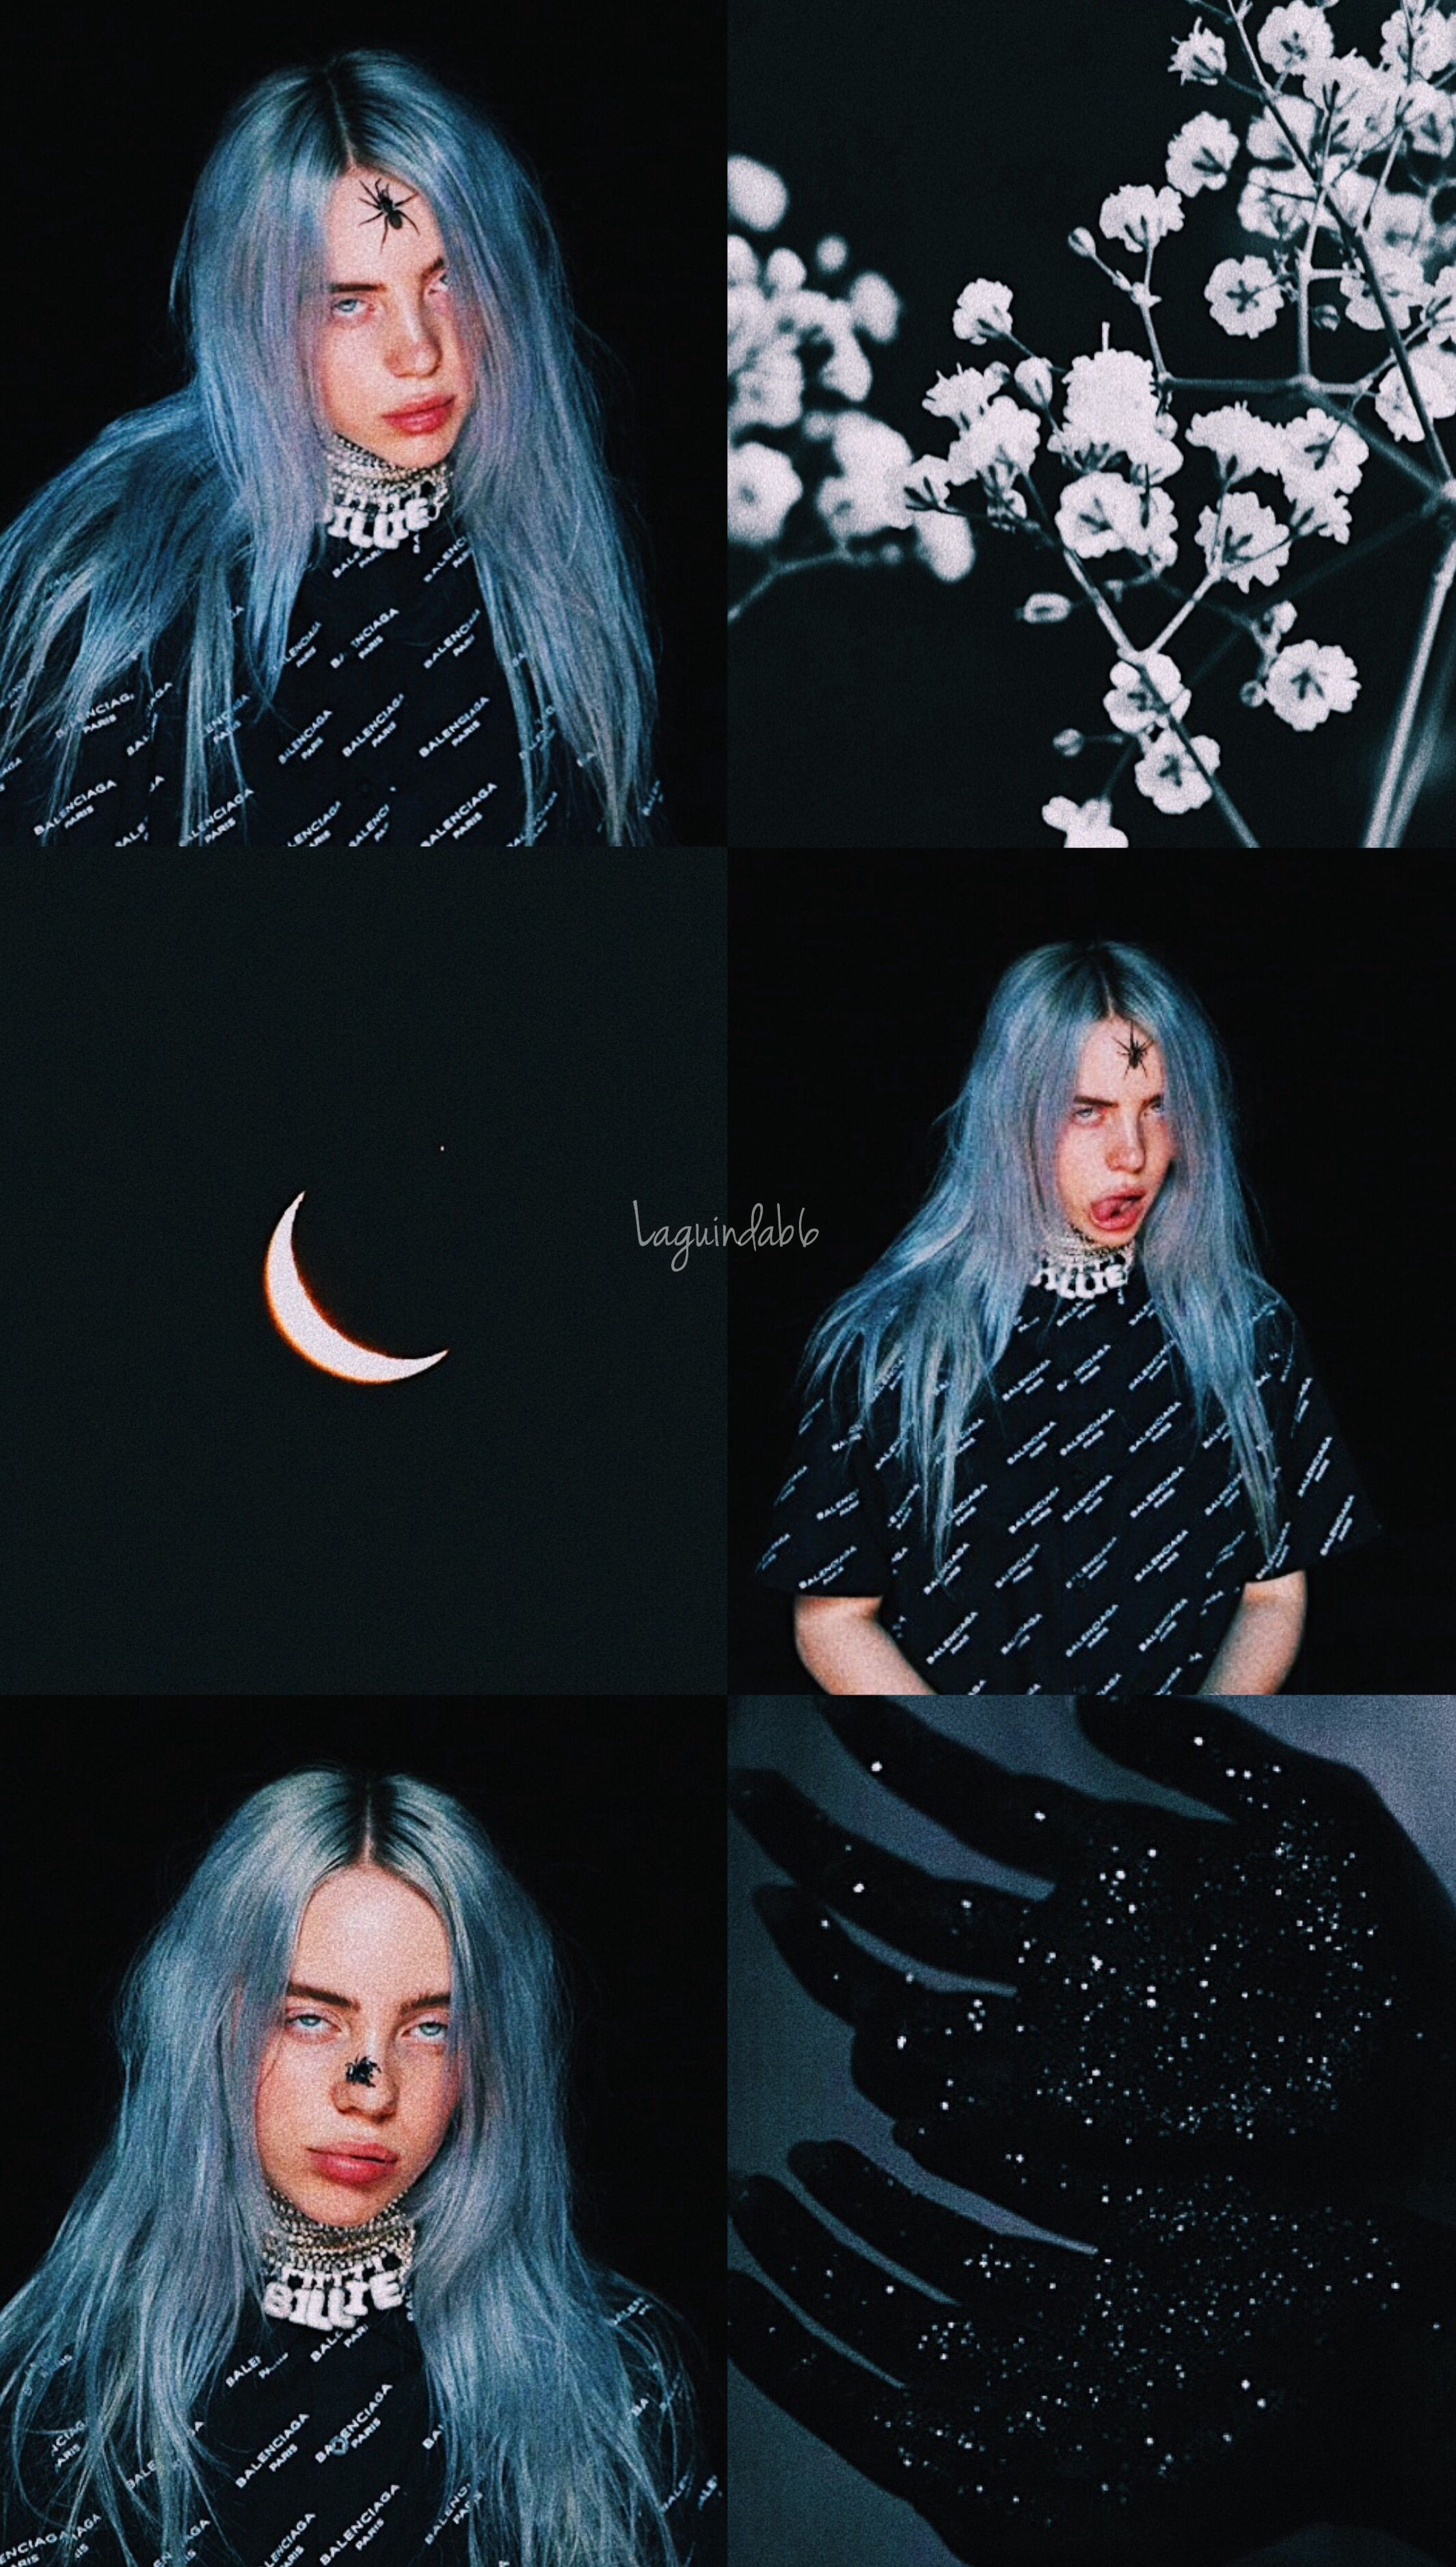 Follow Me For More Laguindab6 Aesthetic Billieeilish Wallpaper Billie Eilish Billie Celebs